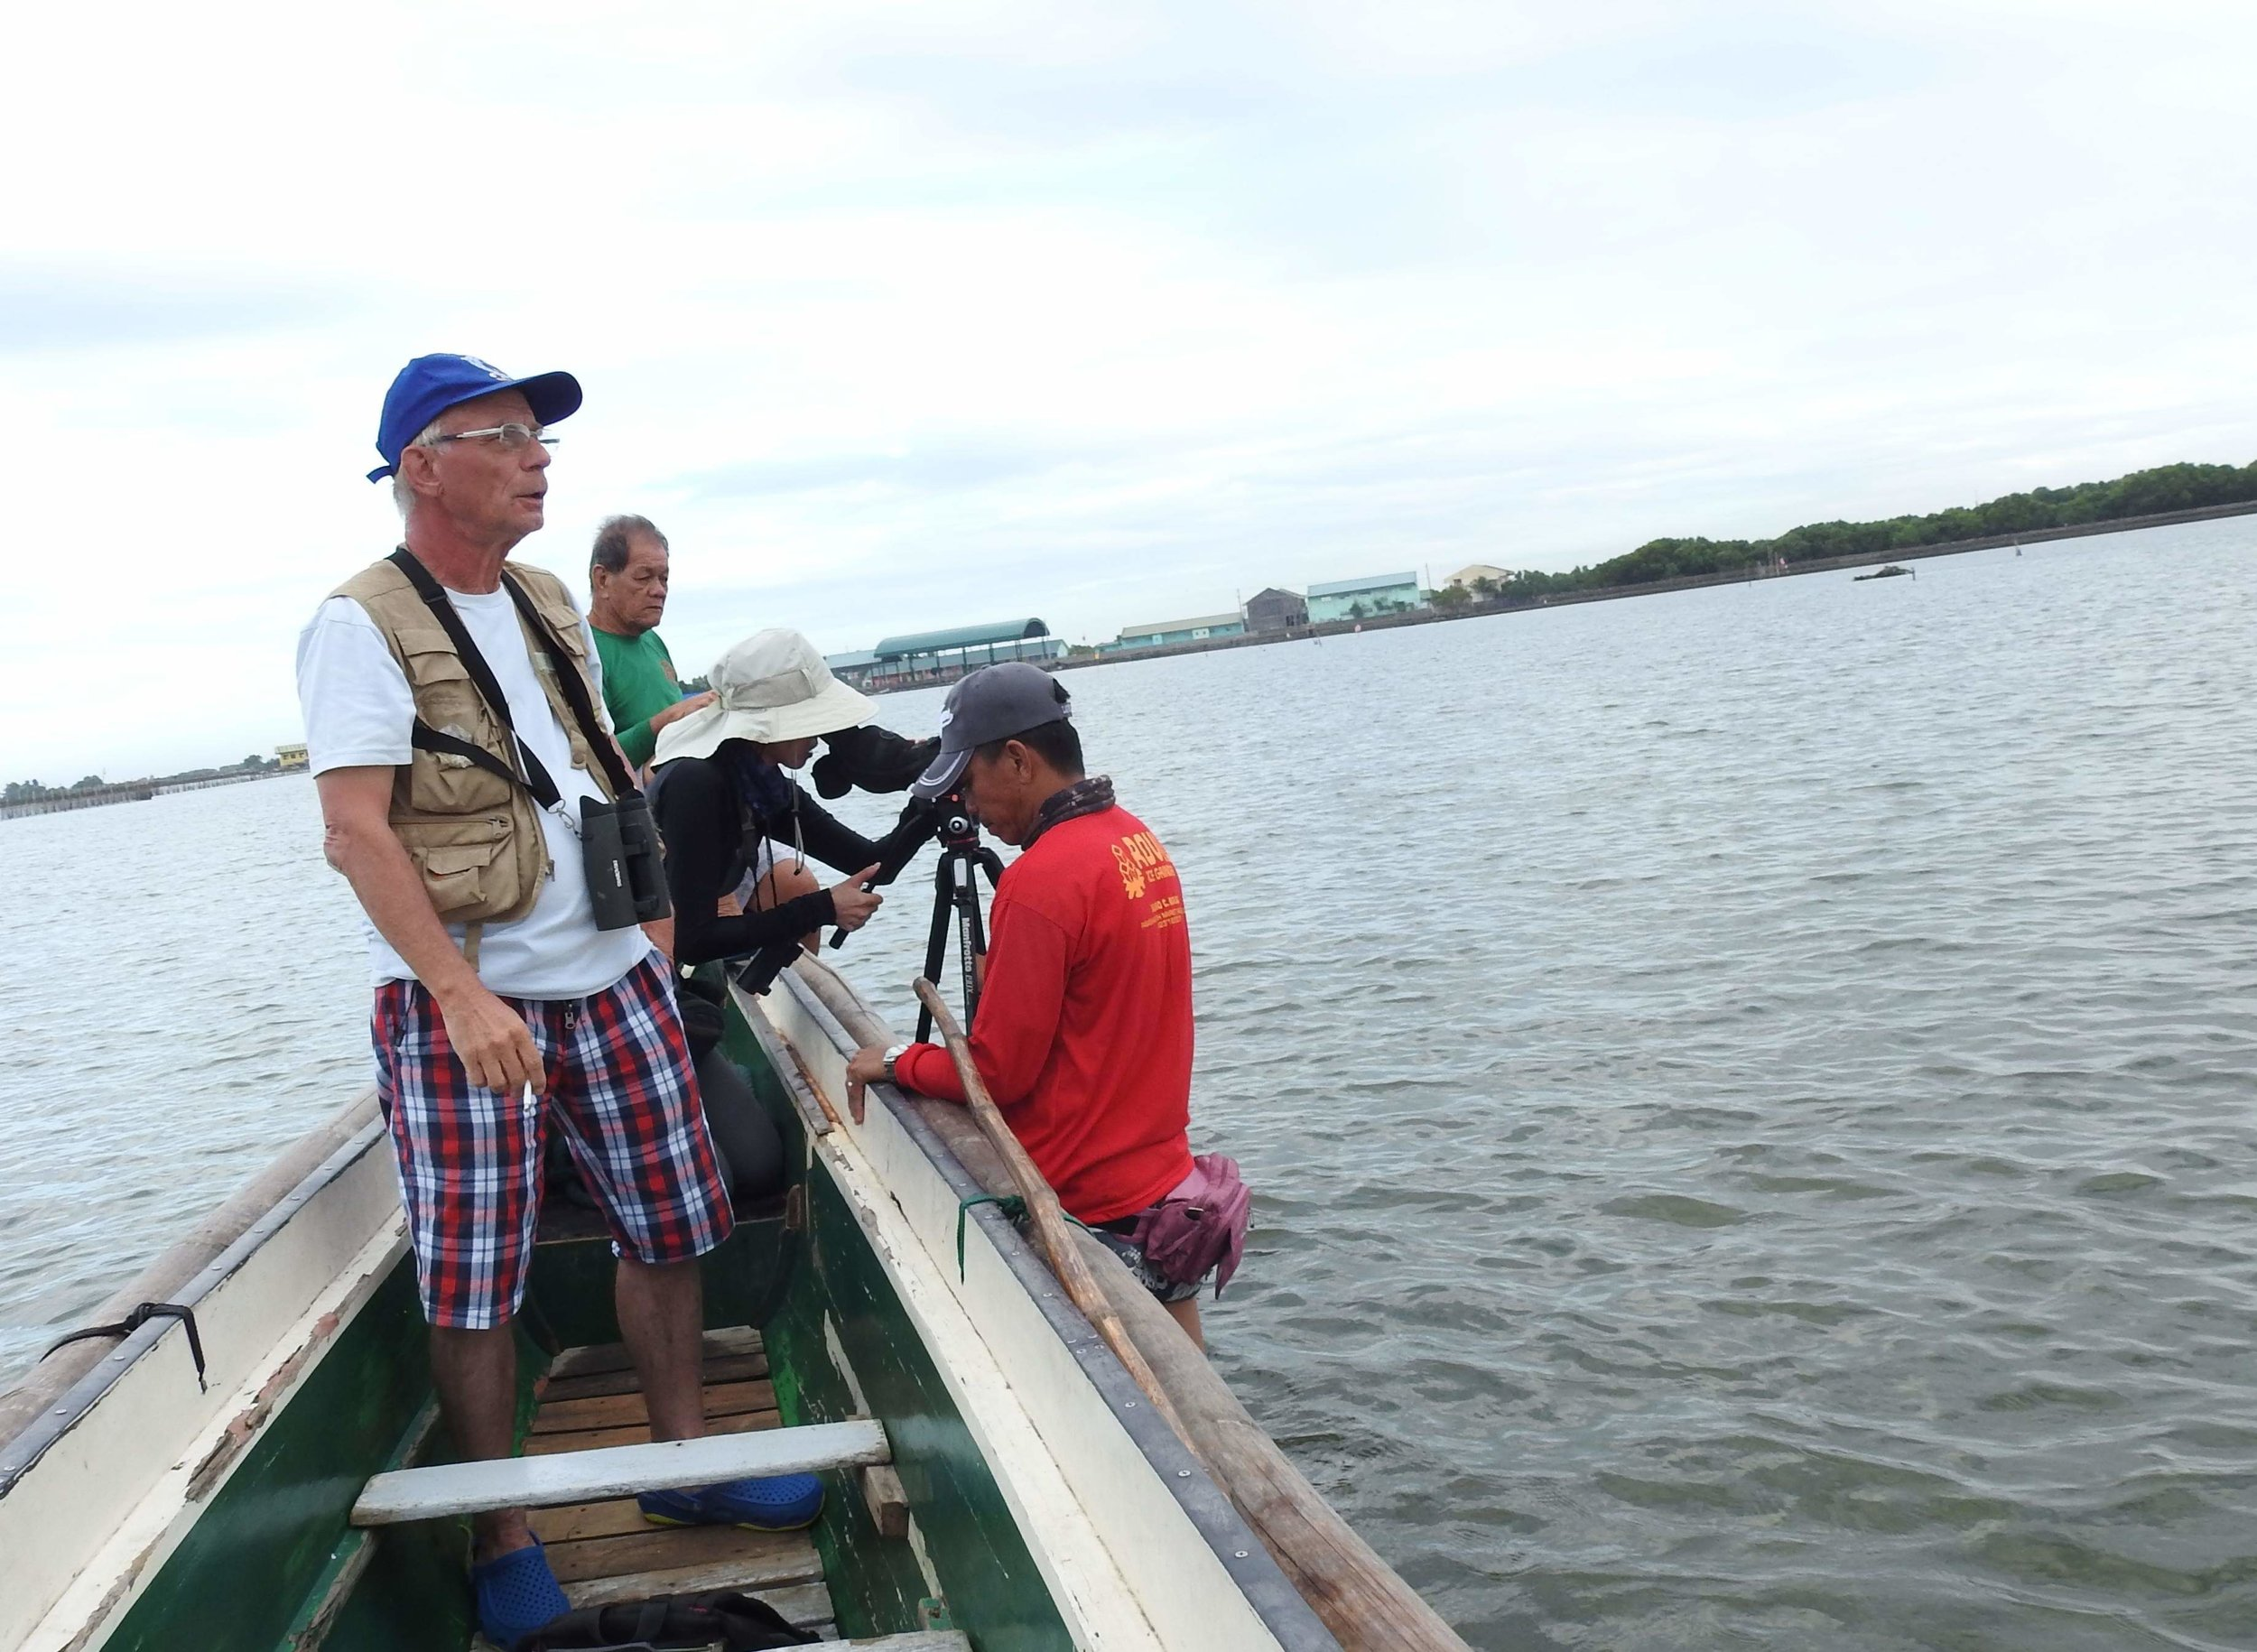 In Bulucan, the Philippines, trying to see birds in water too shallow to proceed by boat. Photo by Angelo Ganotice.